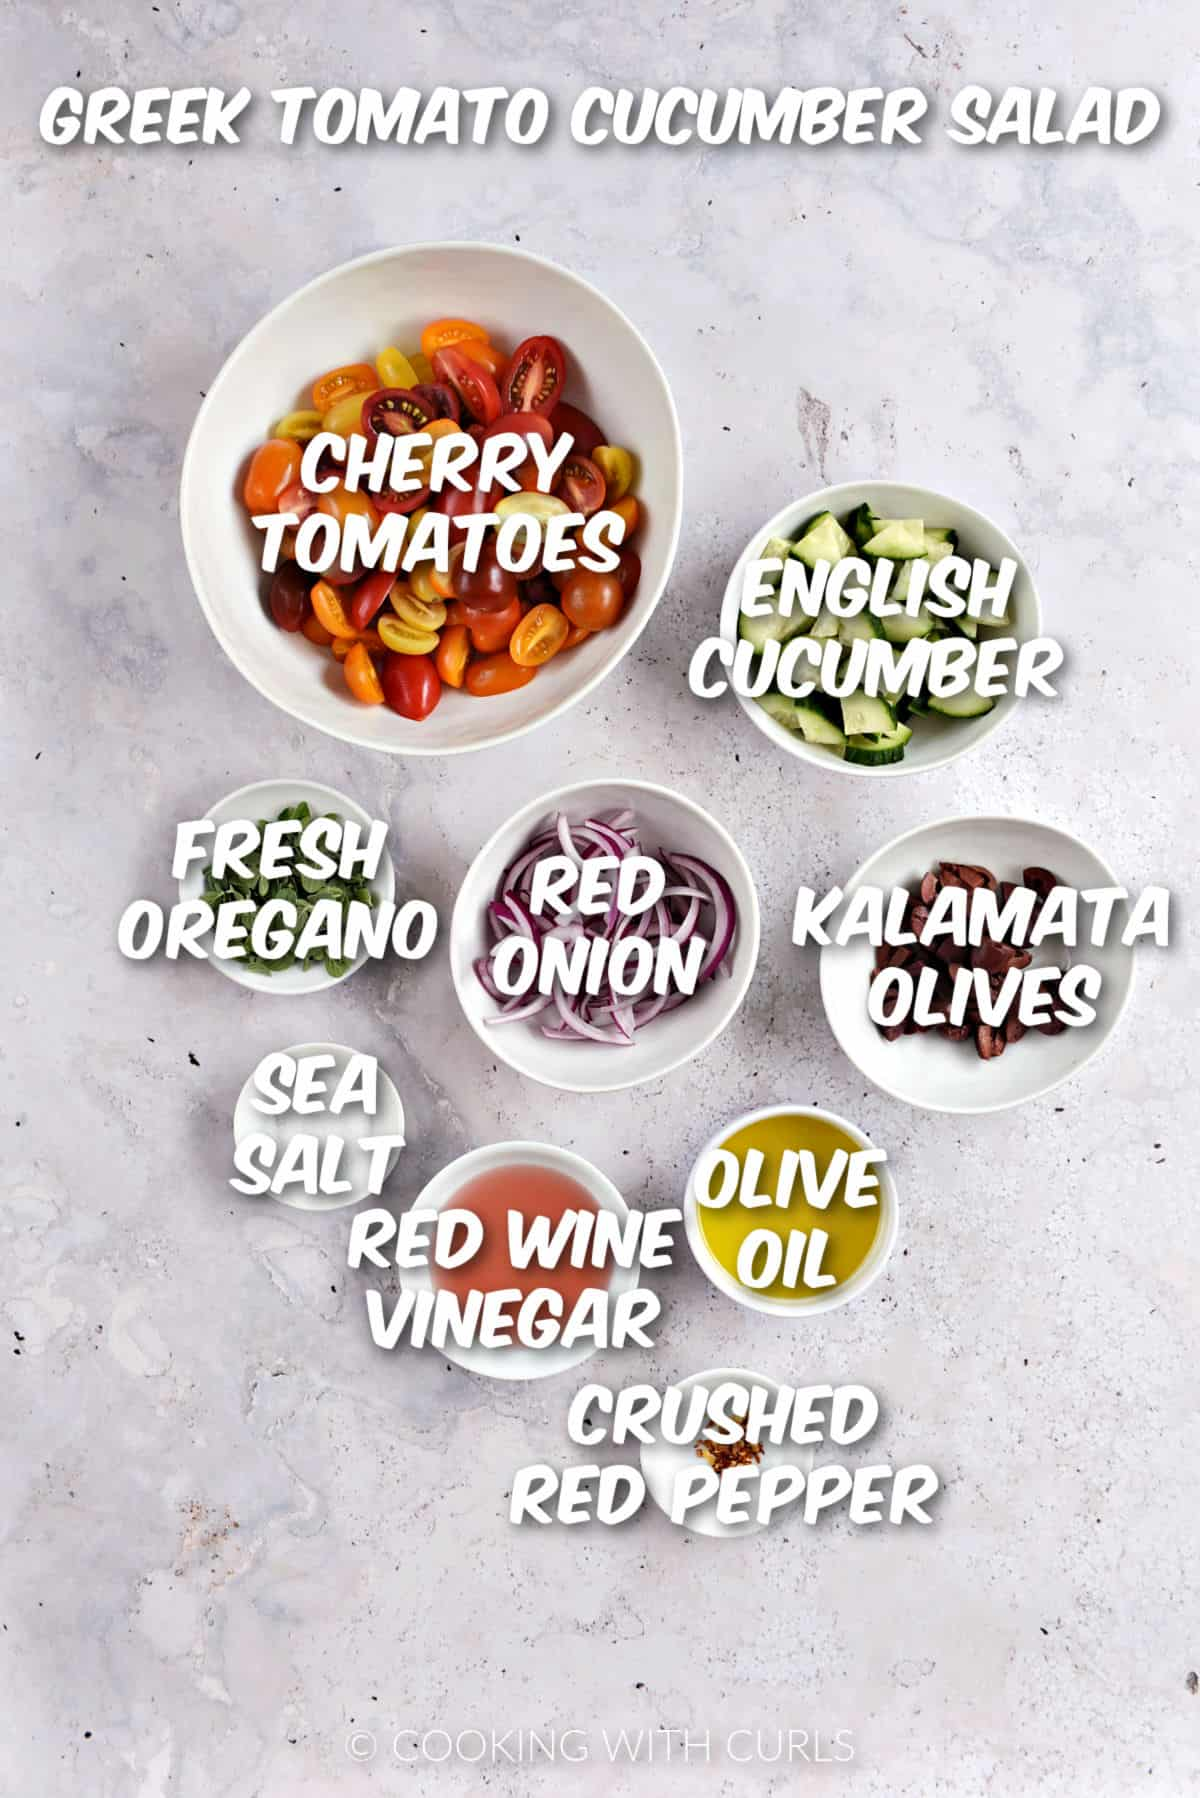 Sliced cherry tomatoes, cucumber, red onion, kalamata olives, oregano leaves, sea salt, red wine vinegar, olive oil, and crushed red pepper in white bowls.